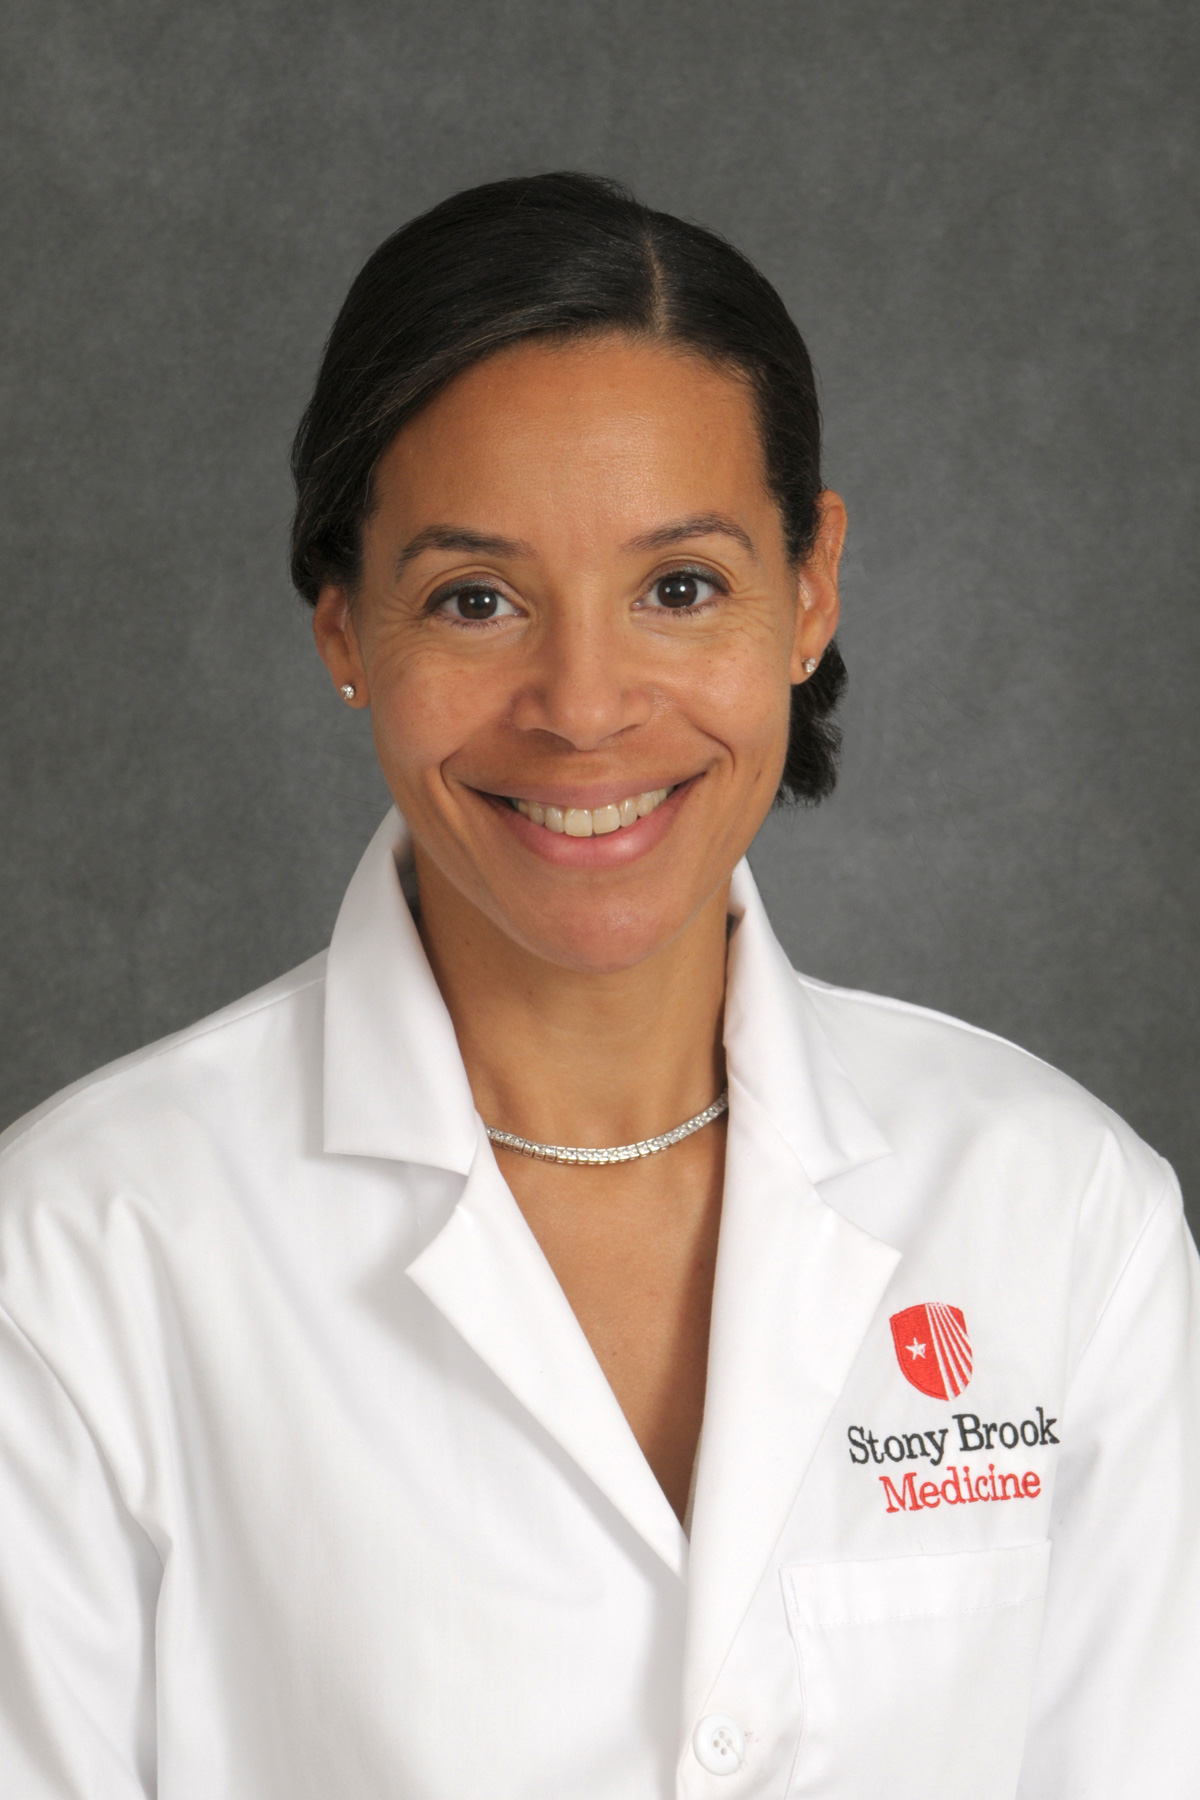 Joanna Chikwe, MD, Chief of the Division of Cardiothoracic Surgery in the Department of Surgery at Stony Brook University School of Medicine